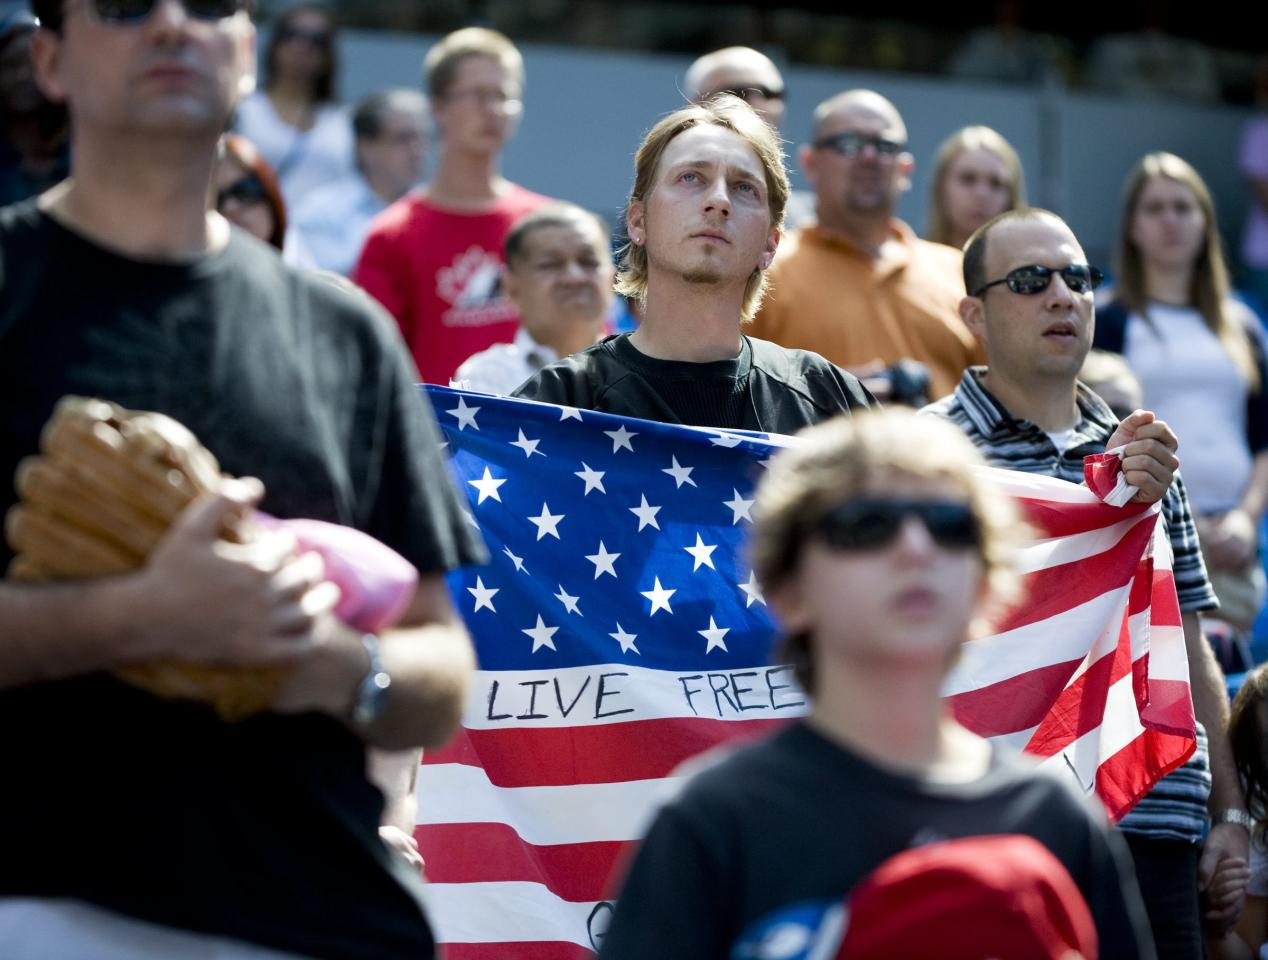 A man holds an American flag during a moment of silence in honor of the 10th anniversary of Sept. 11, 2001 before a baseball game between the Toronto Blue Jays and Baltimore Orioles, Sunday, Sept. 11, 2011, in Toronto. (AP Photo/The Canadian Press, Aaron Vincent Elkaim)